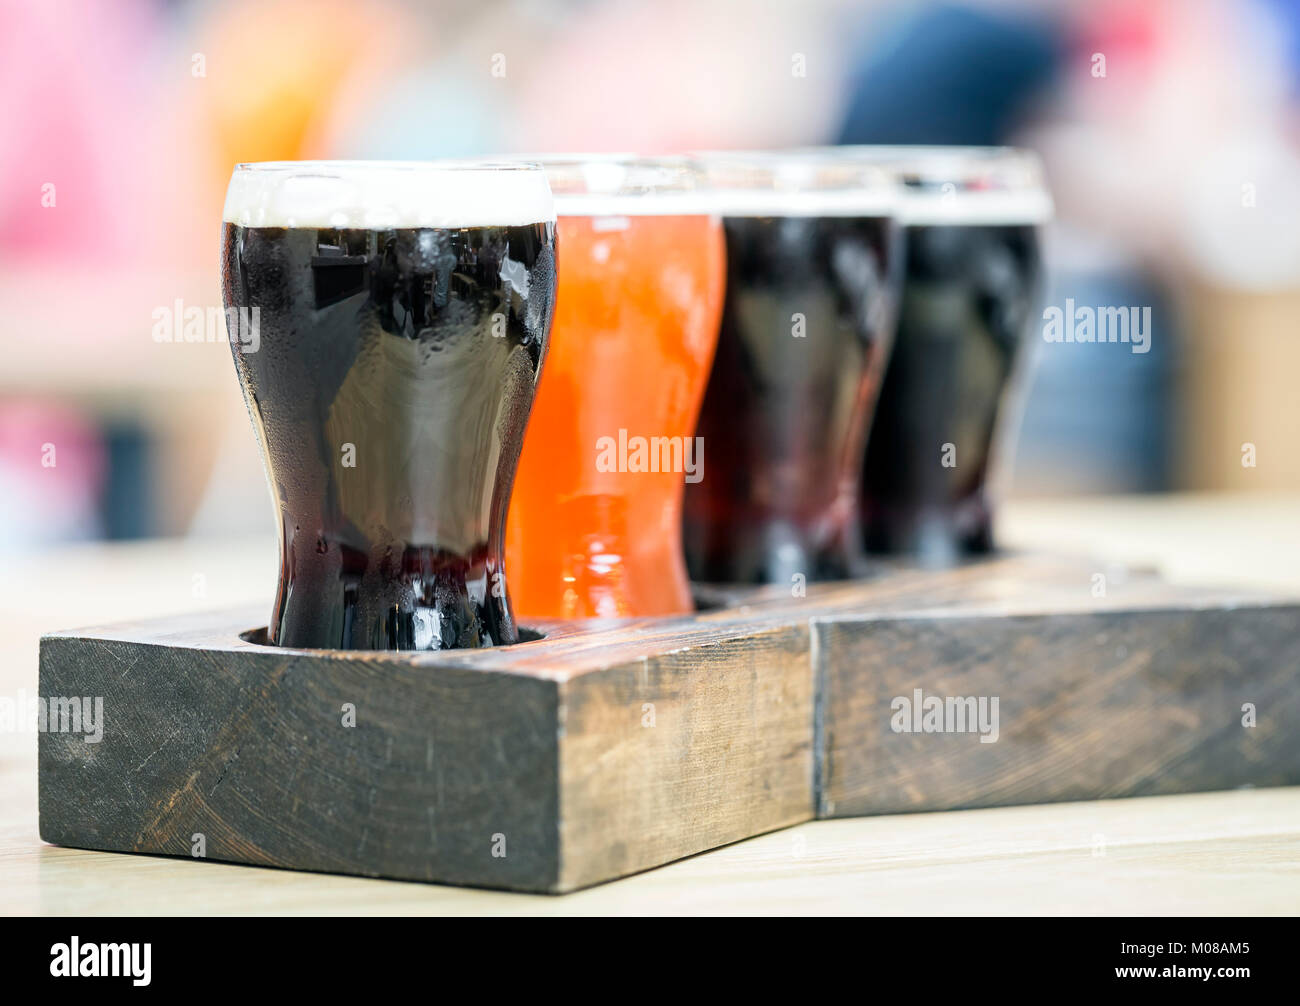 A flight of beers, close up - Stock Image